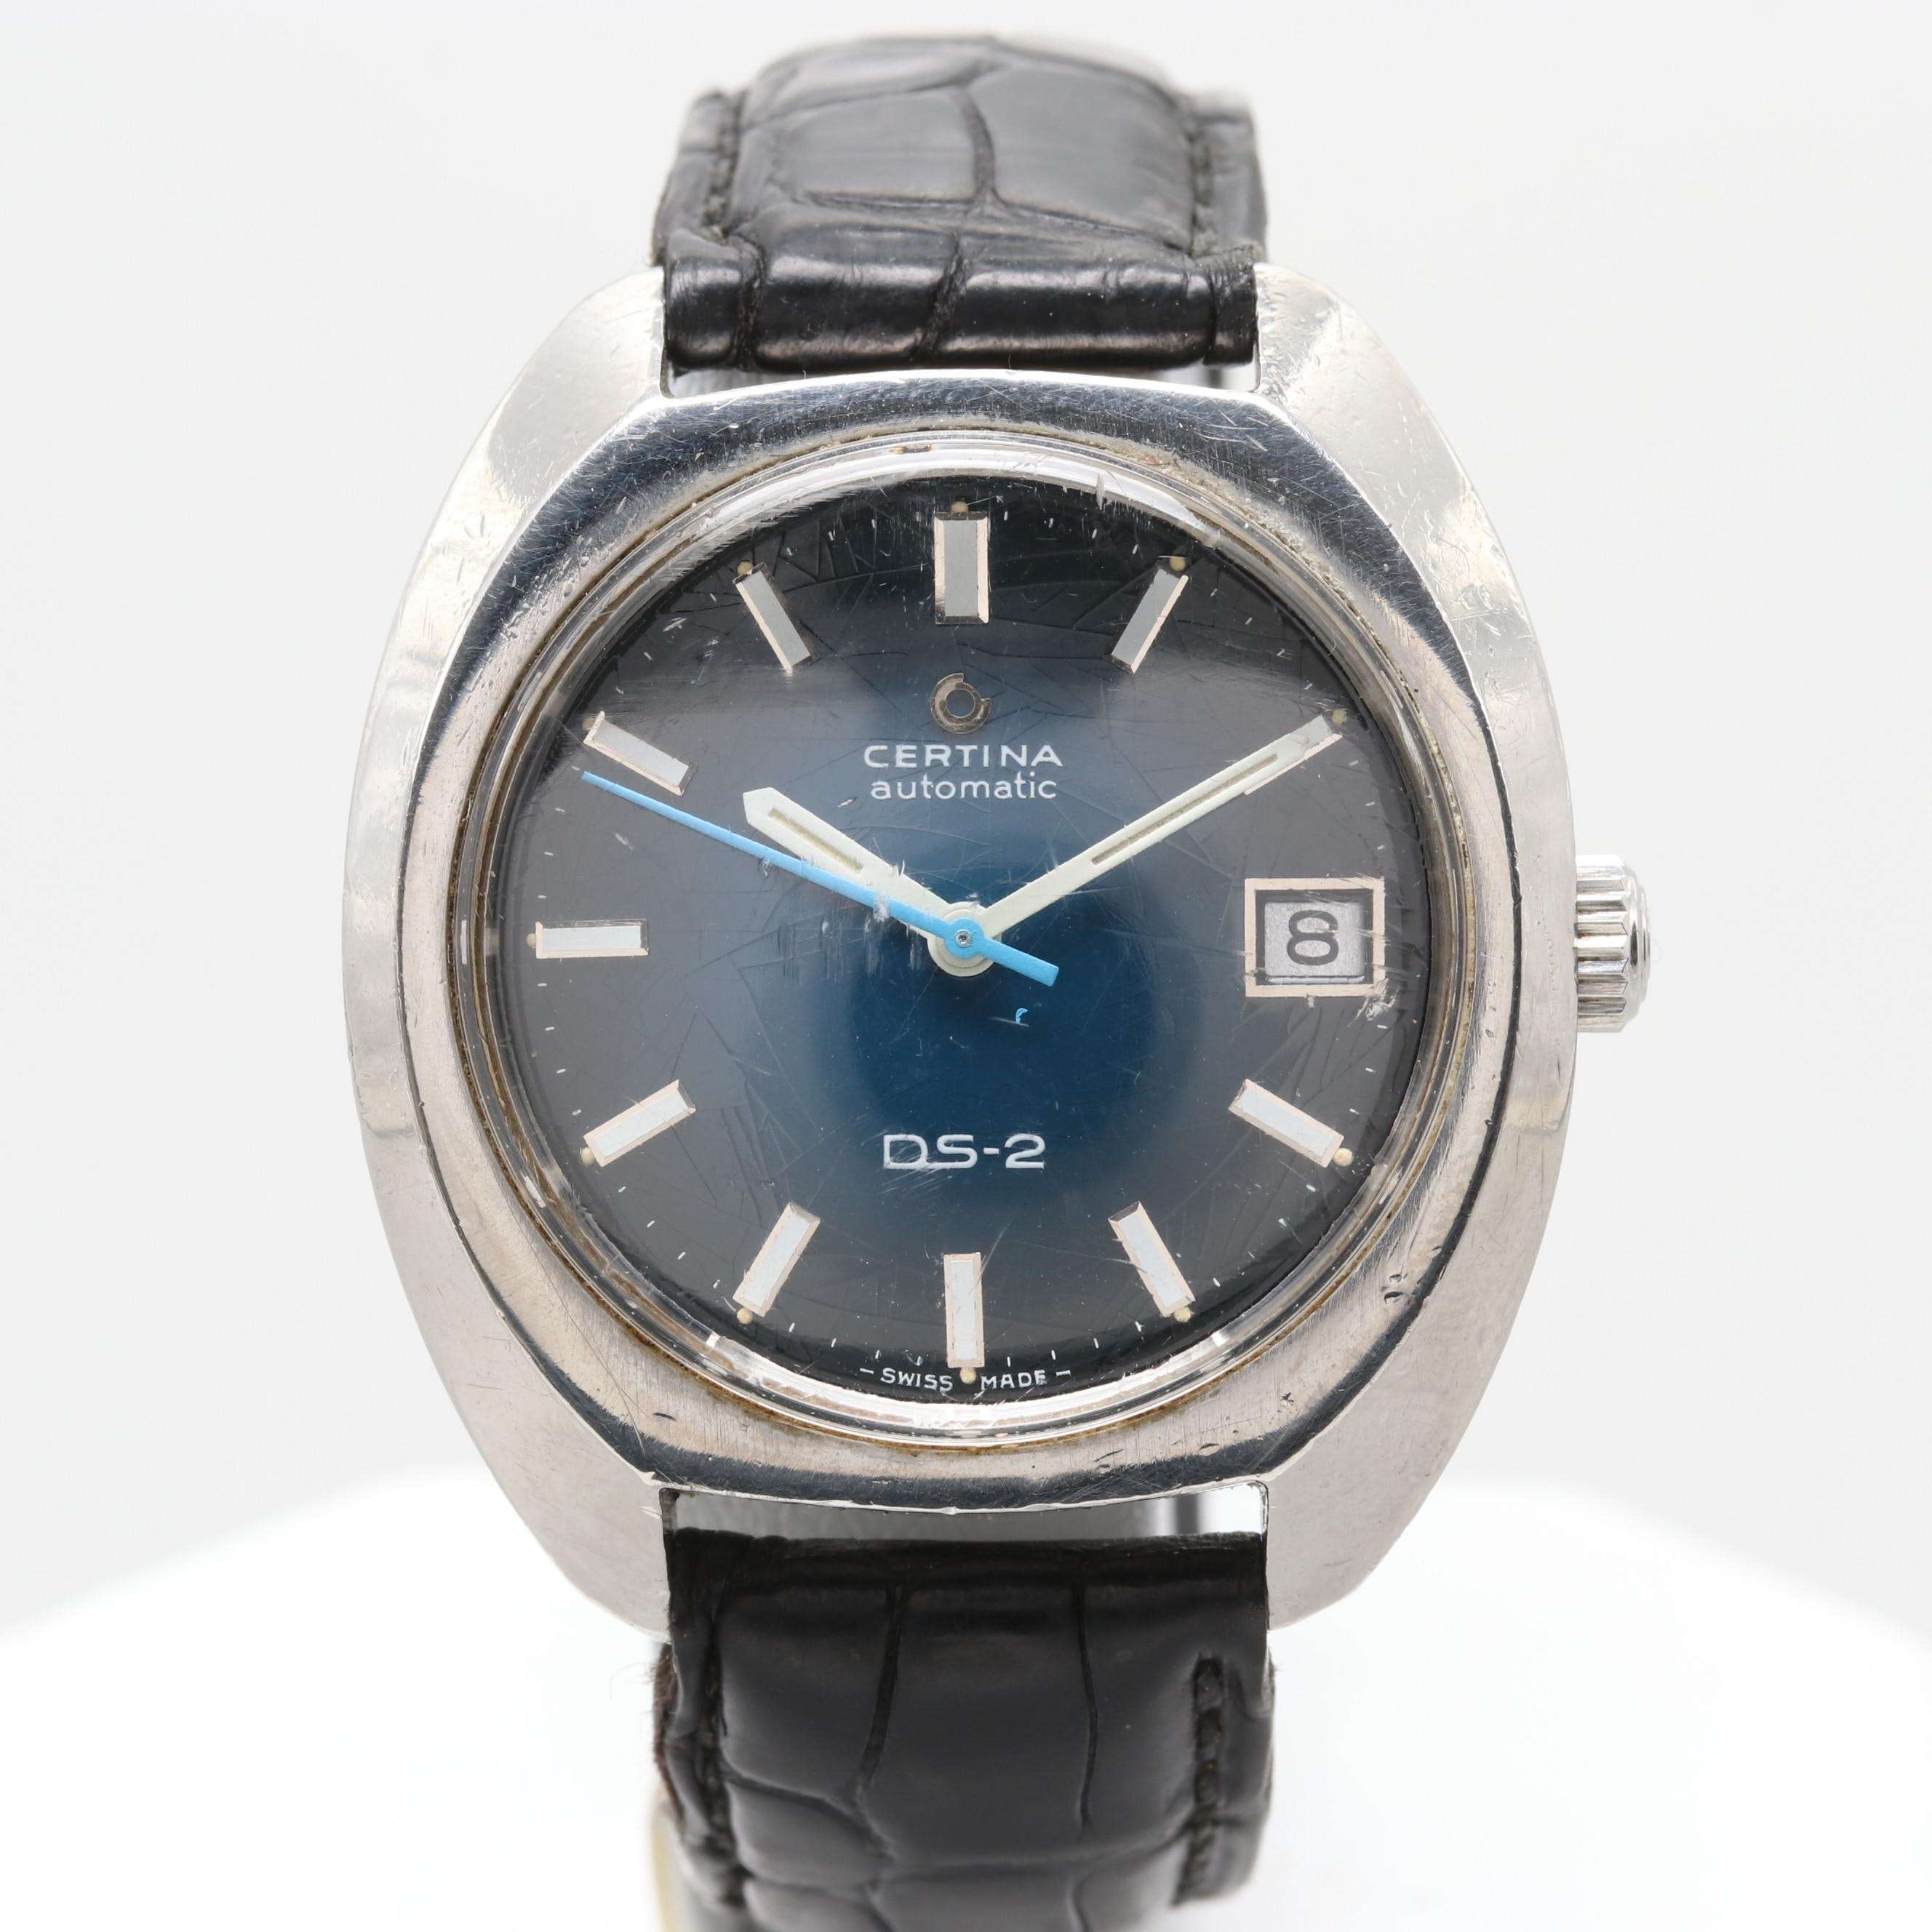 Certina DS-2 Stainless Steel Wristwatch With Date Window